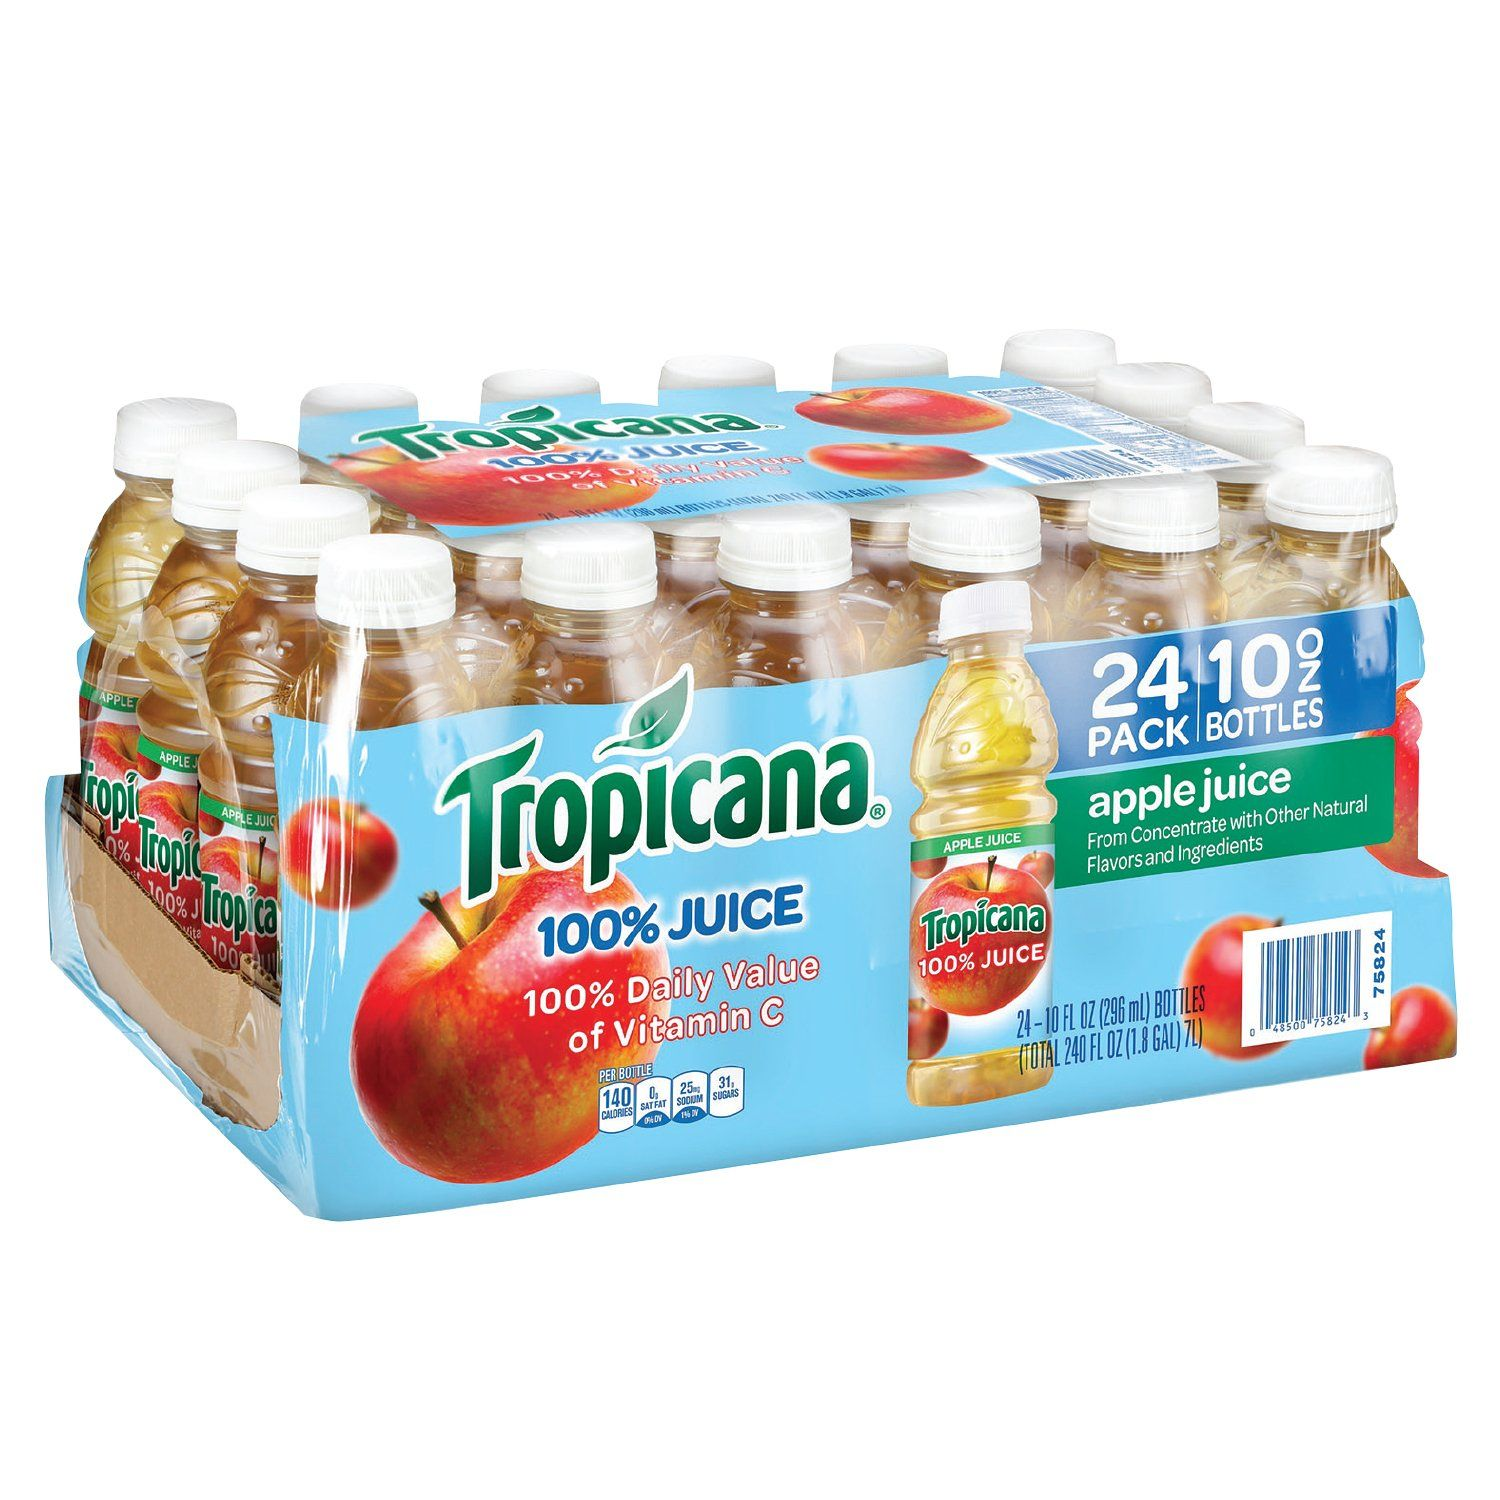 Tropicana Apple Juice, 10 oz., 24 Count These beverages